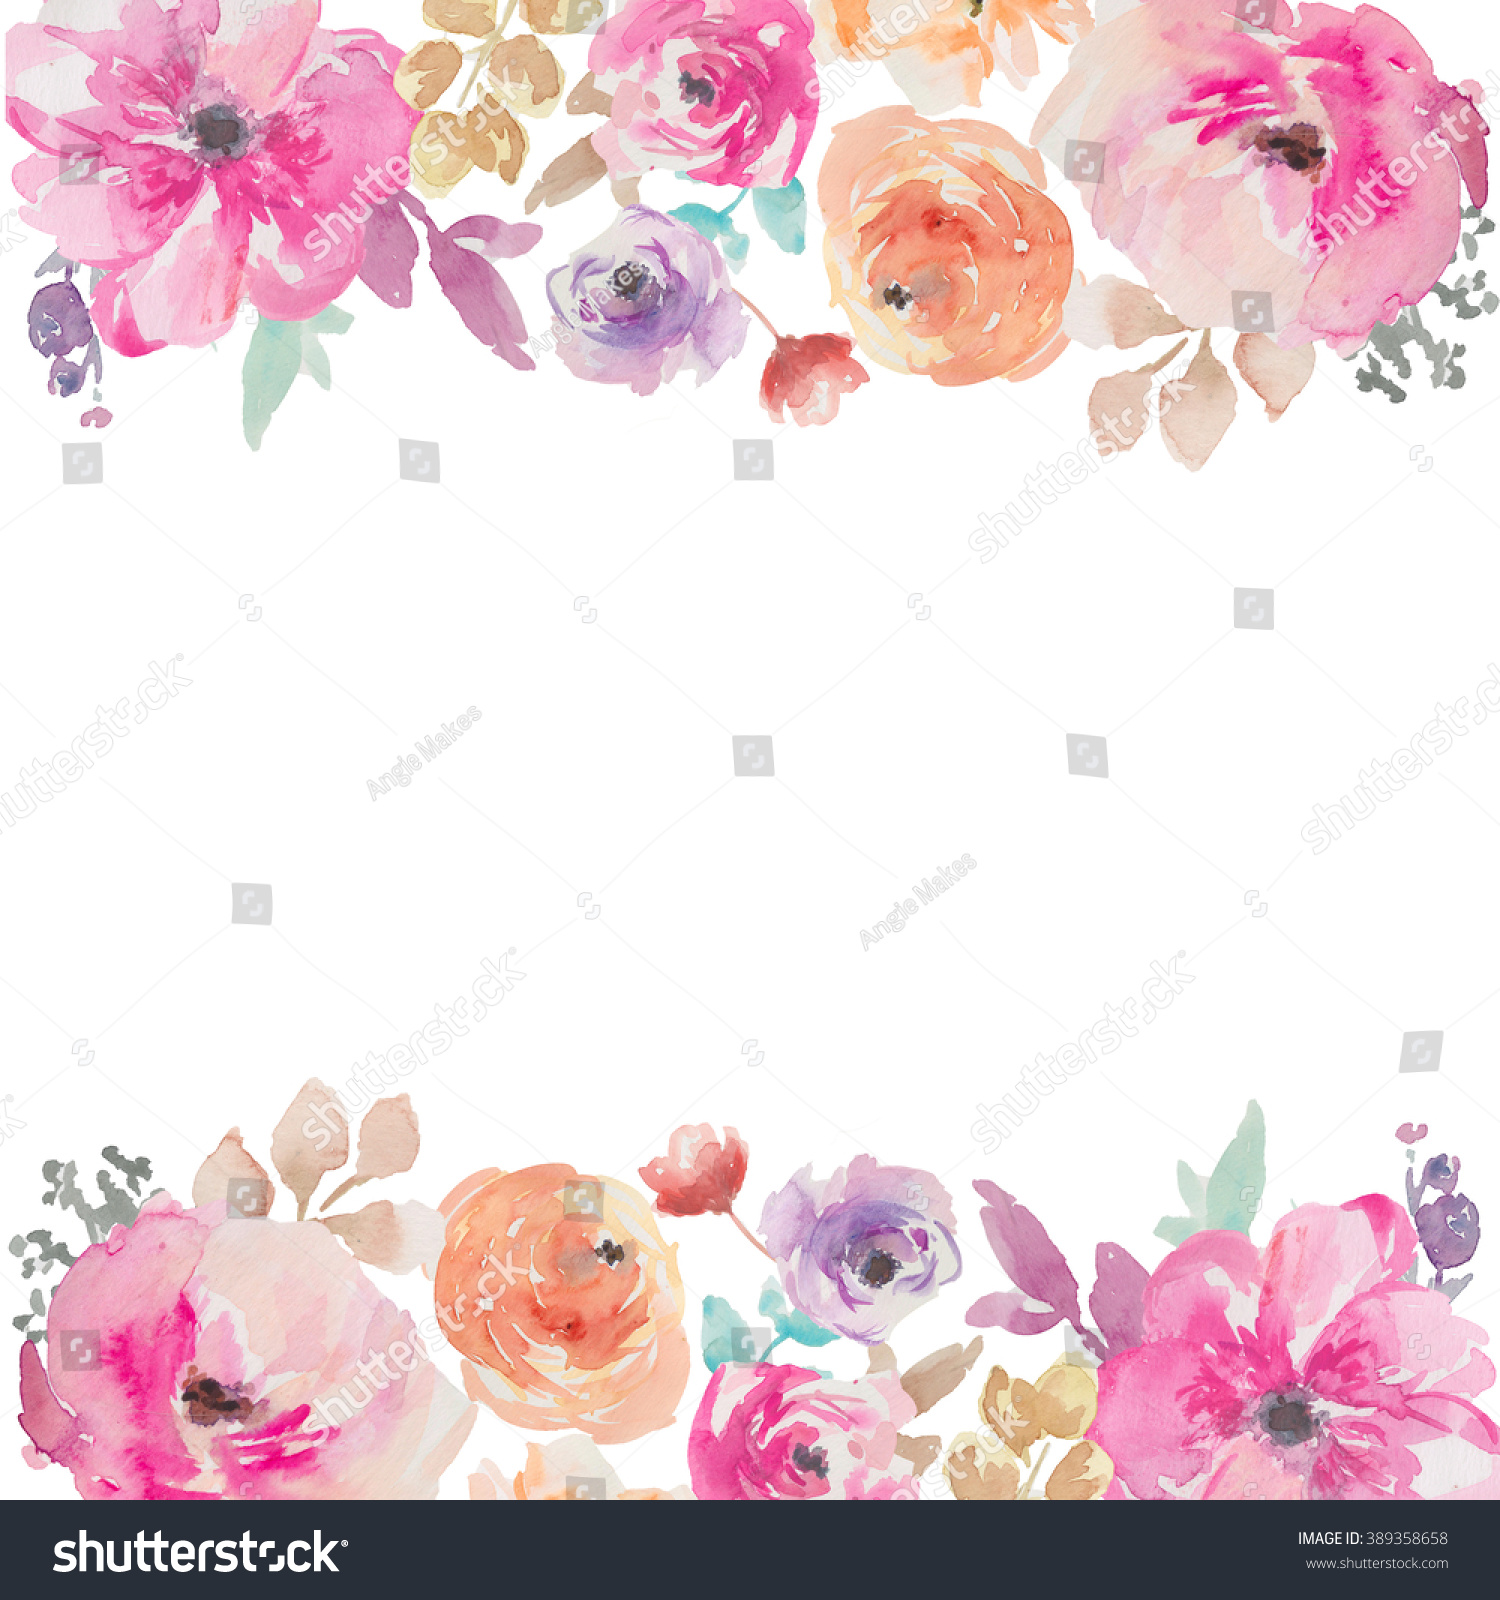 Colorful Watercolor Flower Border Painted Flower Stock ...